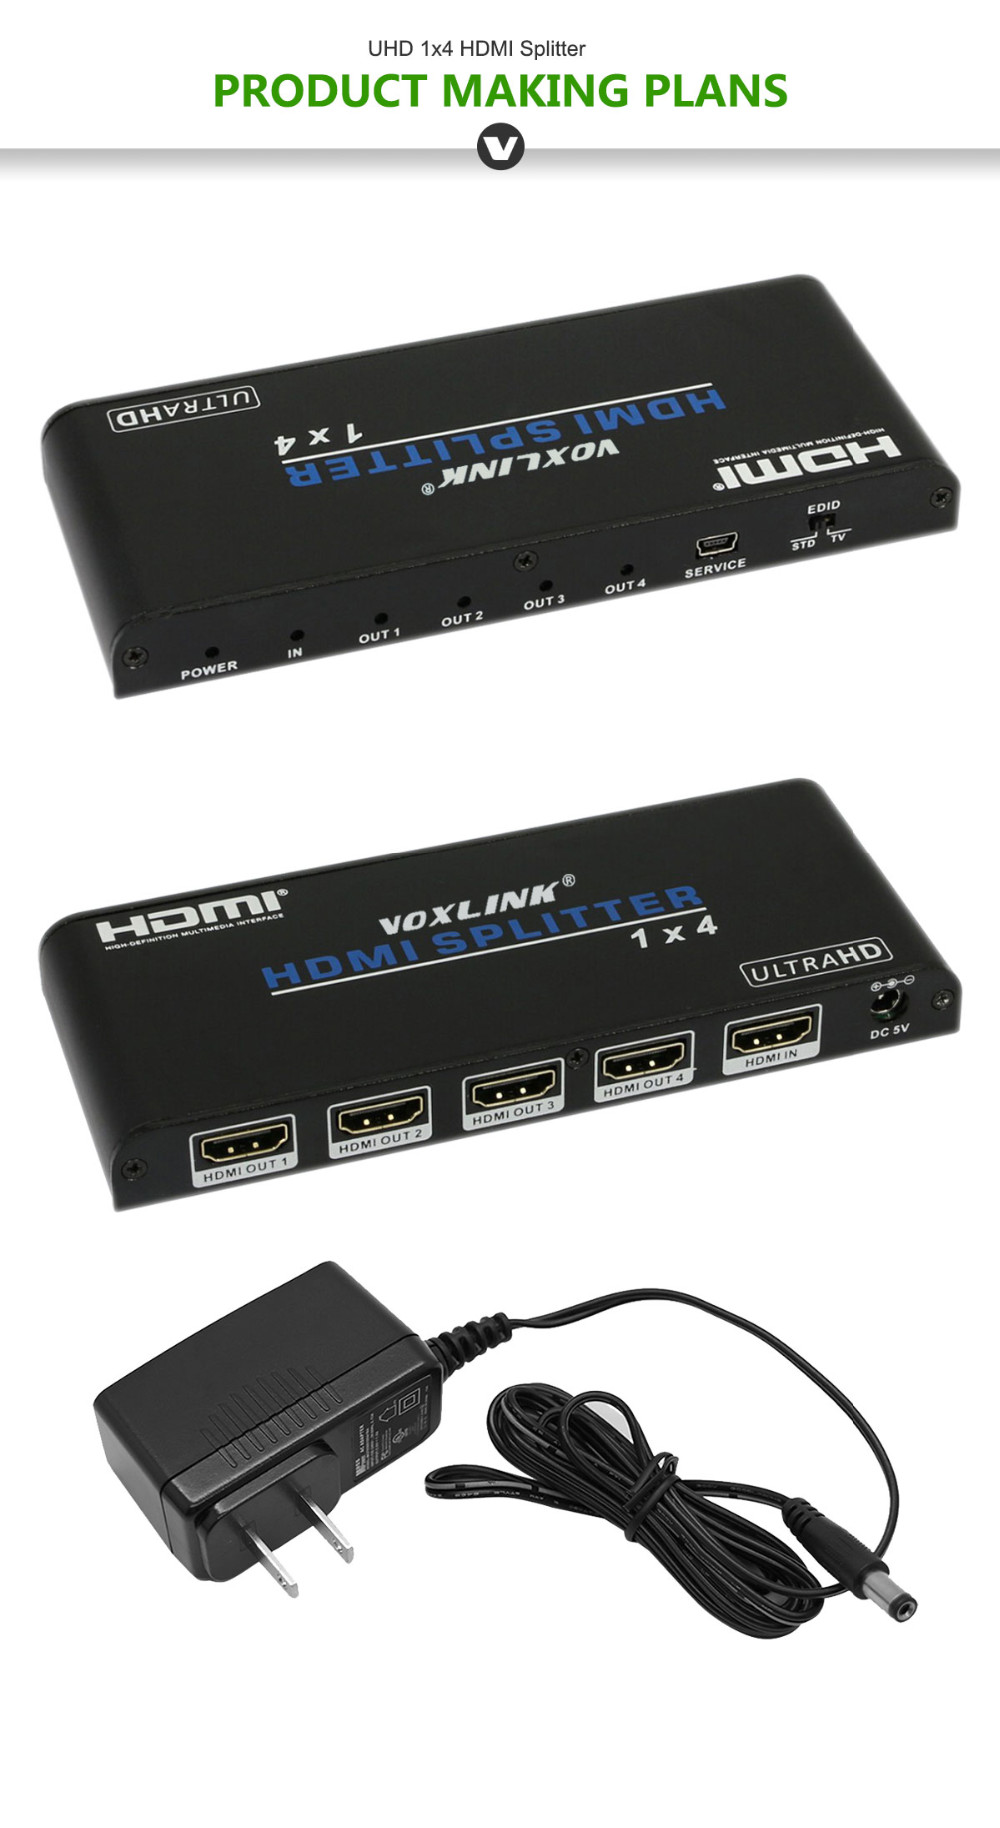 Buy Voxlink 4k2k Uhd Hdmi Splitter 1x4 1 Input 4 Wiring Diagram Ac Adaptor For Laptop Outlet Connection 2 3 5 6 8 7